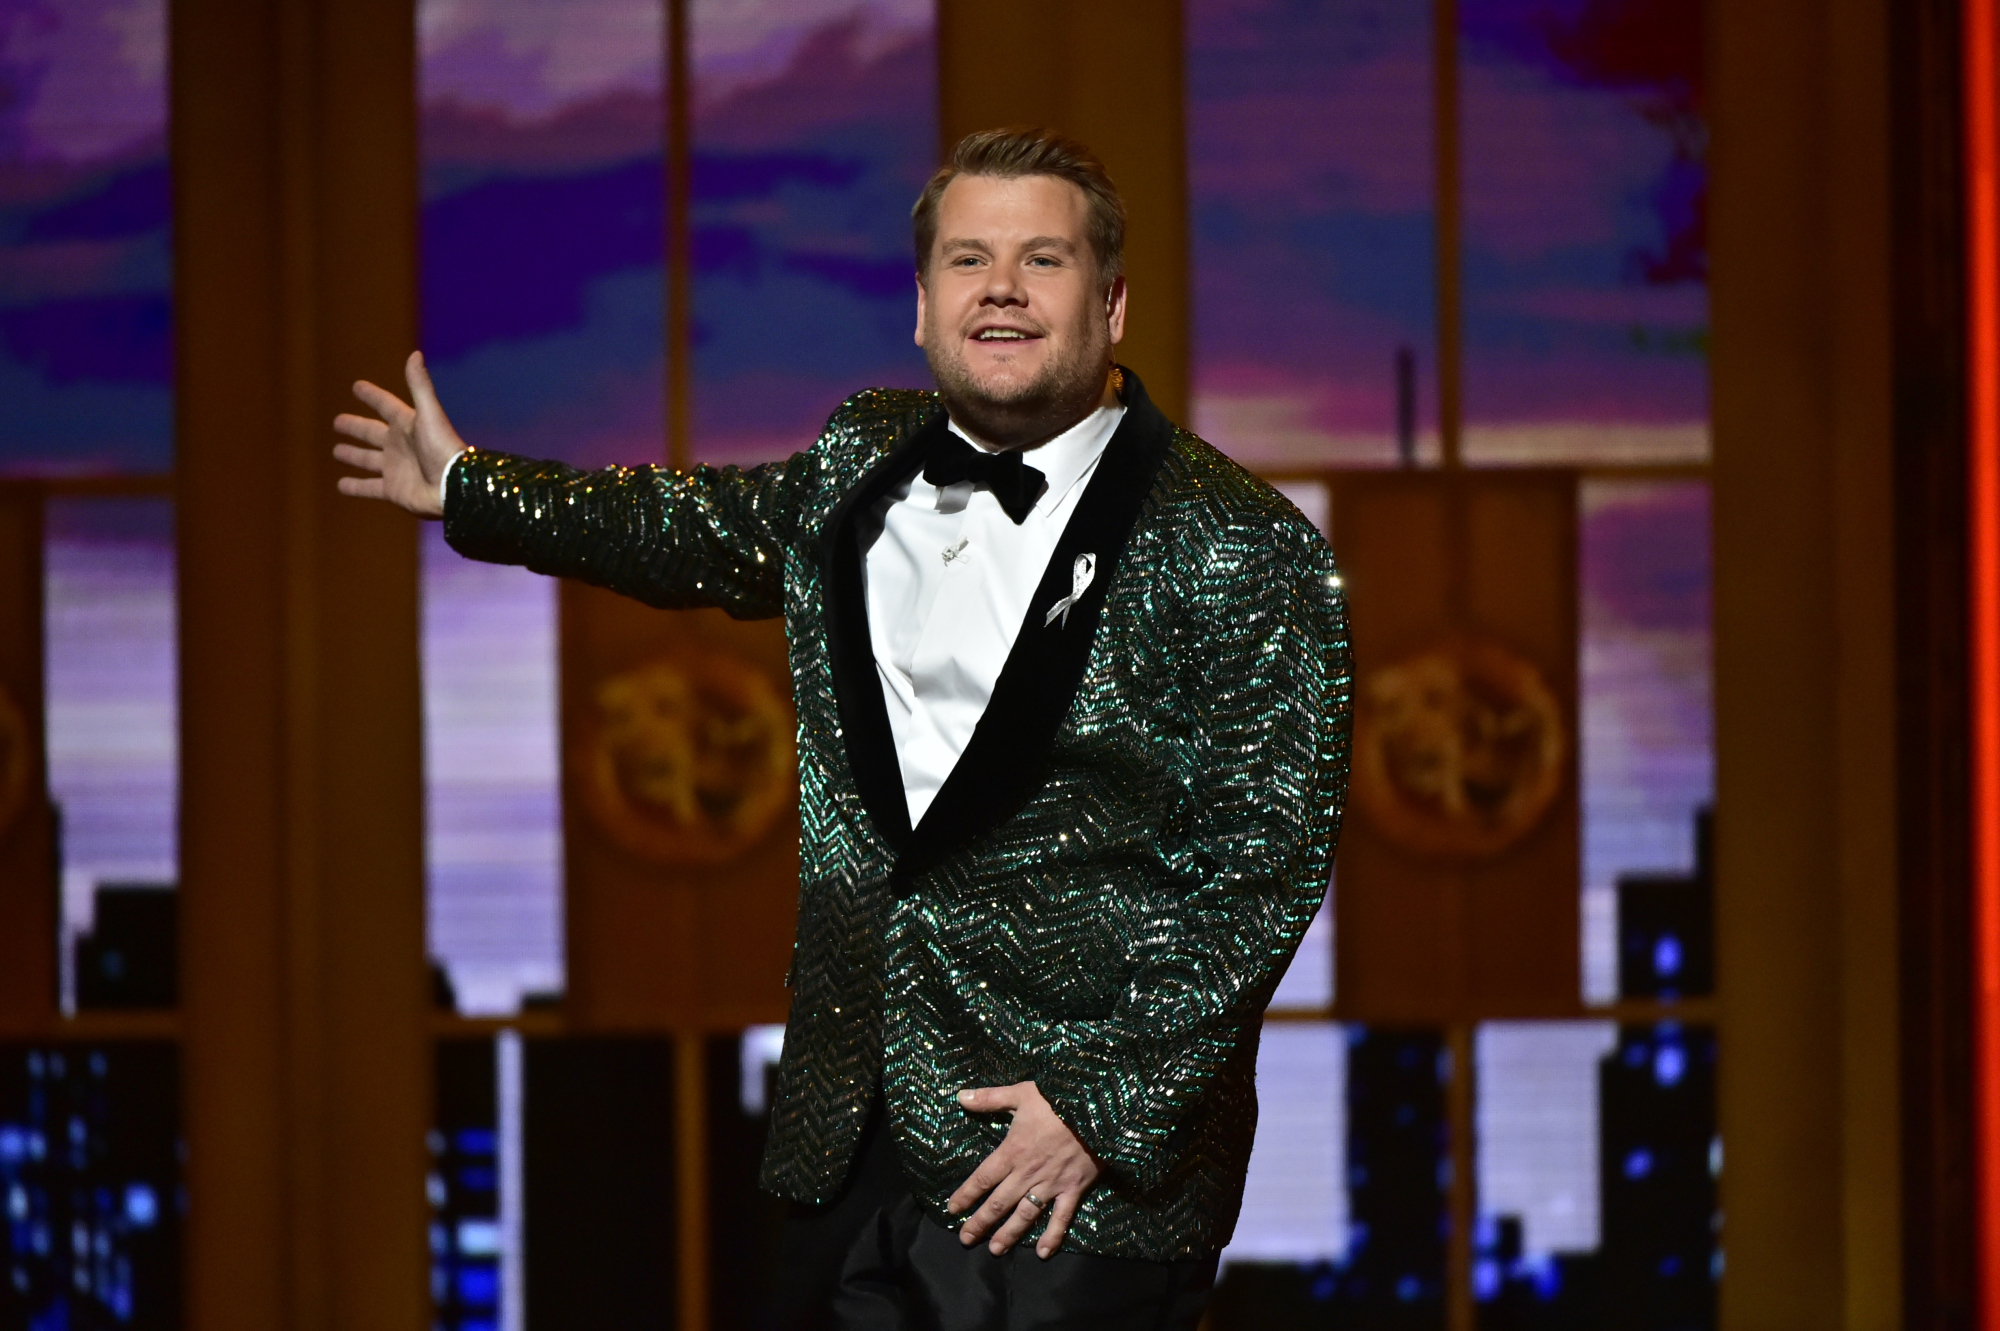 Presenting...this year's 40 Under 40 list (which includes James Corden, pictured above at the 2016 Tony Awards).